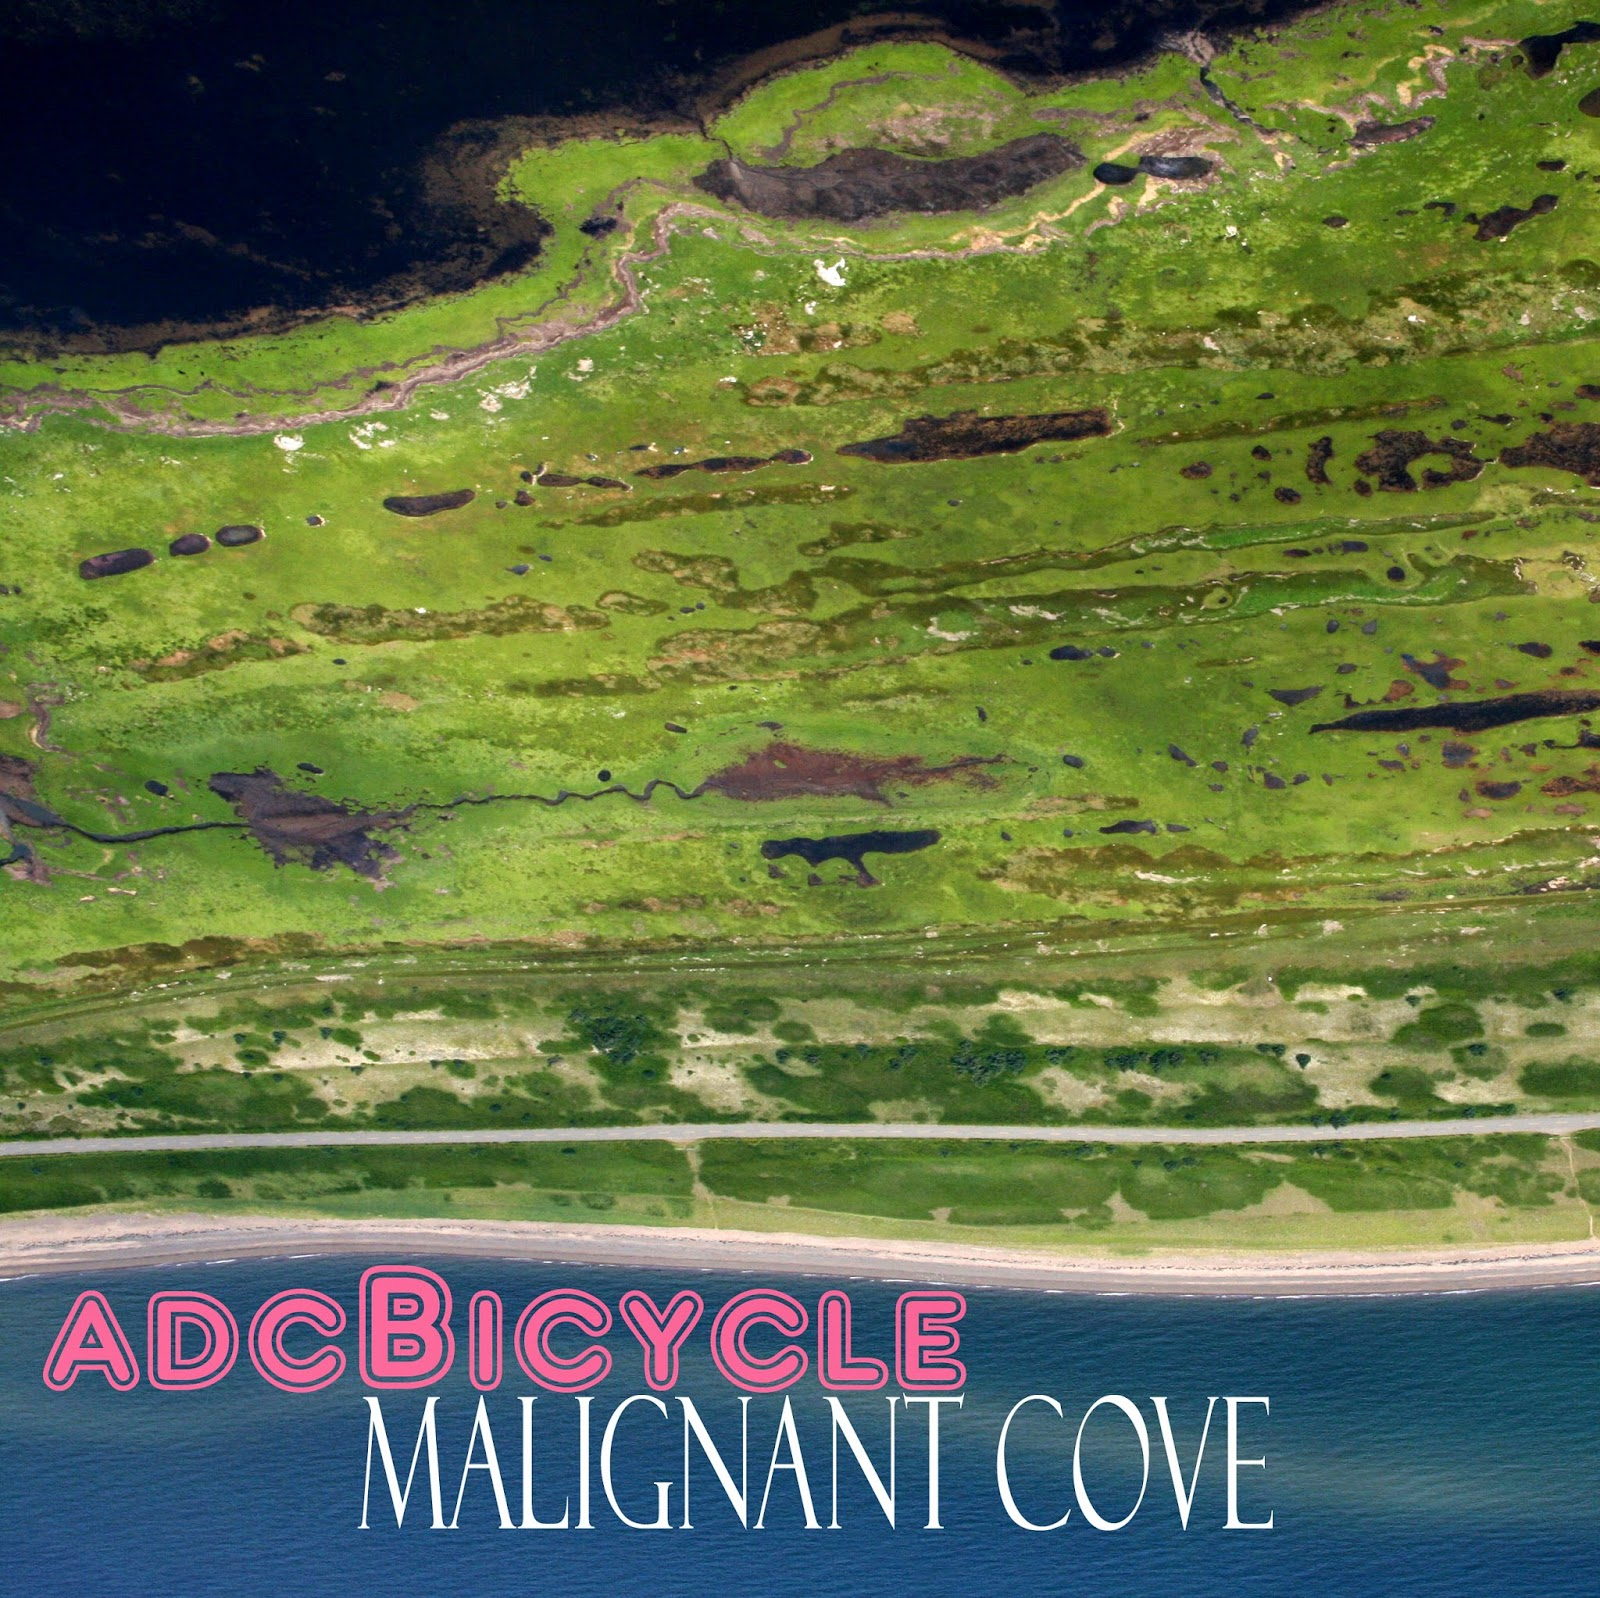 https://adcbicycle.bandcamp.com/album/malignant-cove